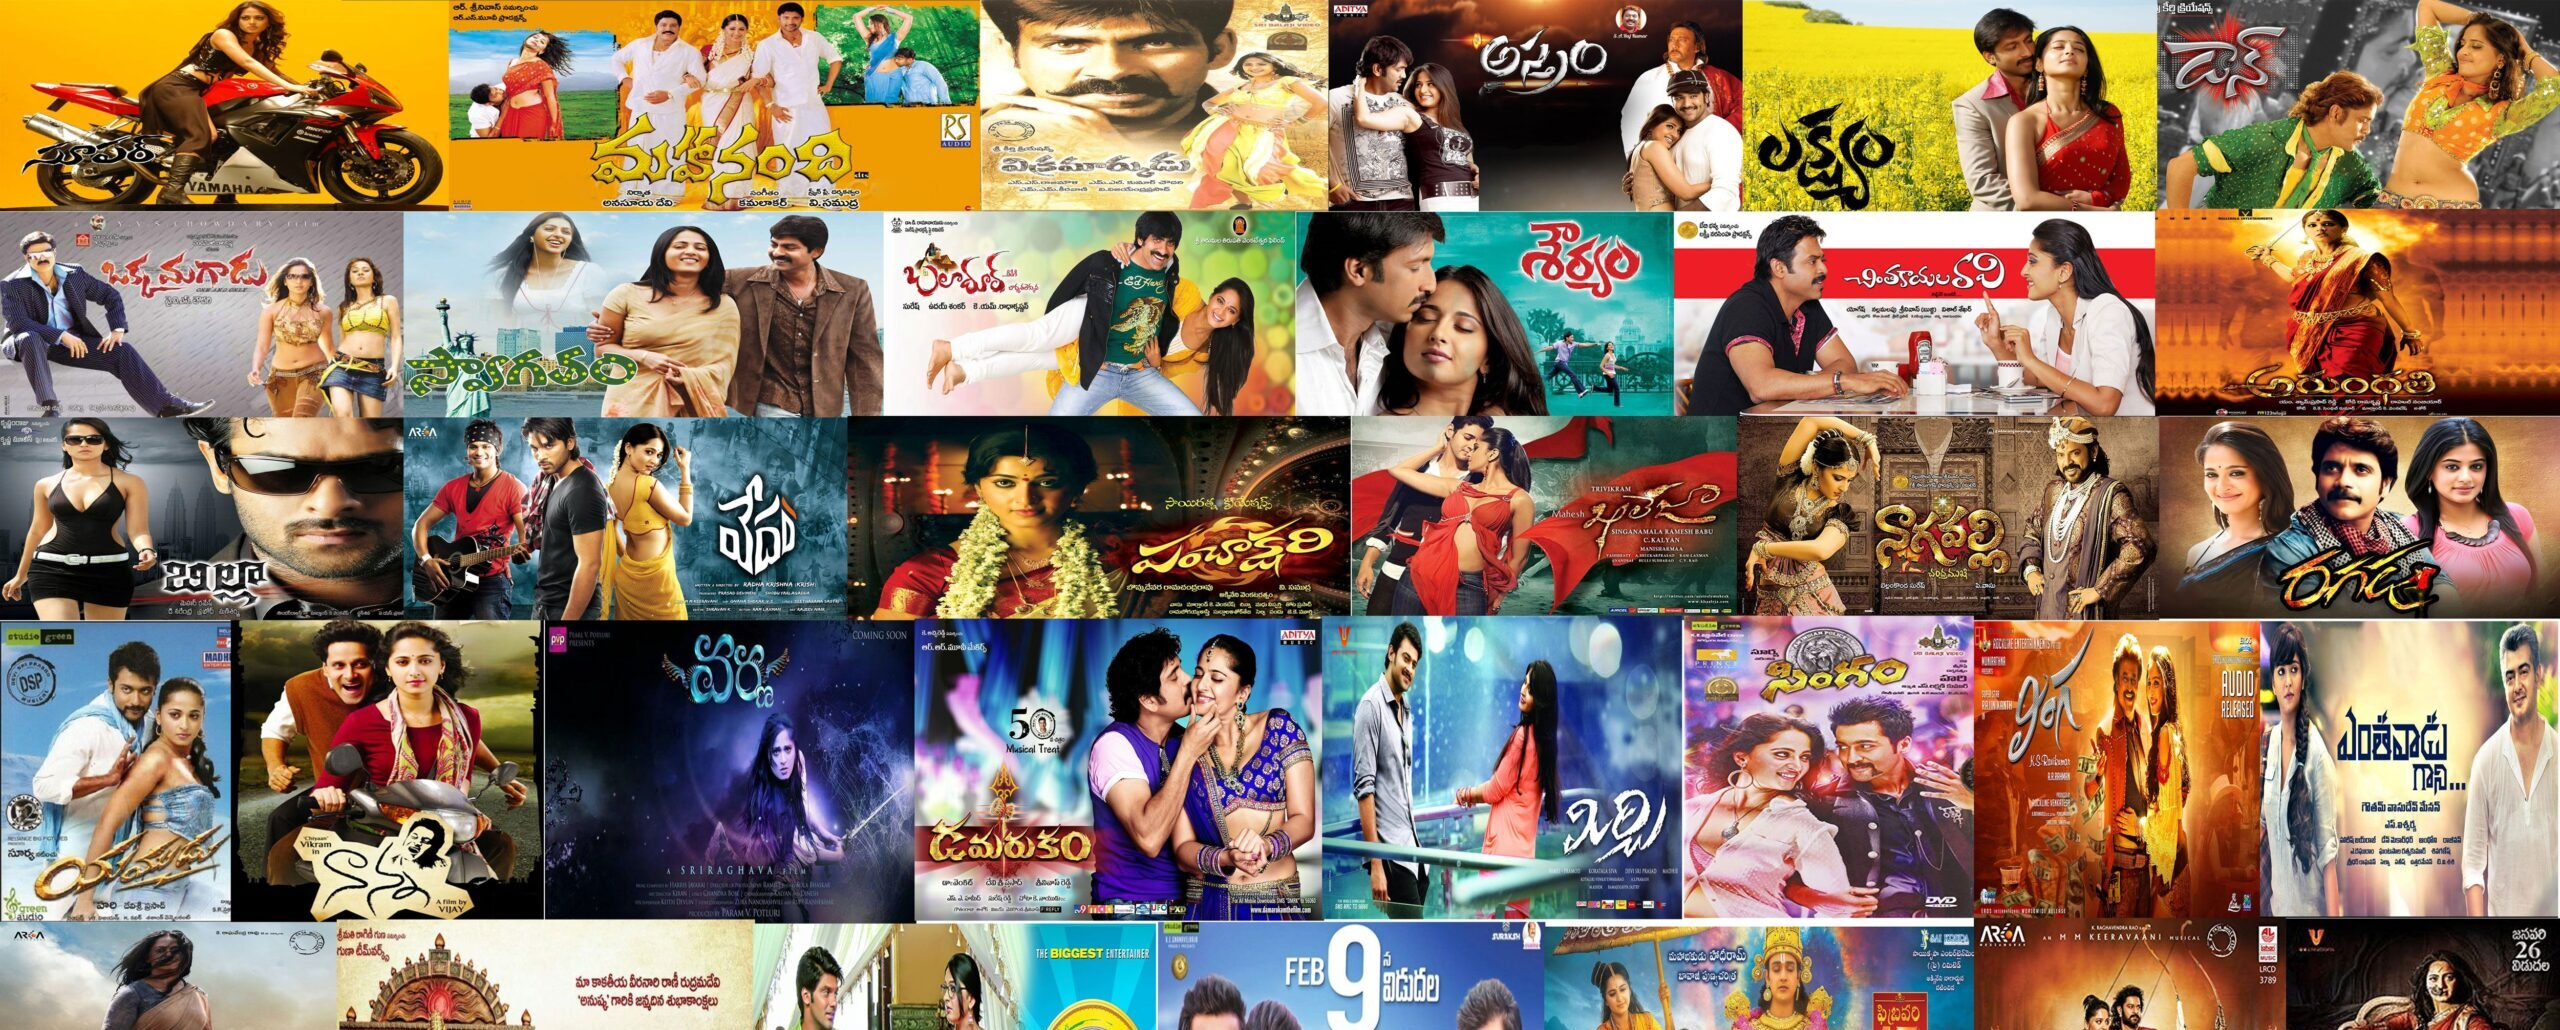 Worked in Films (year 2005-20):